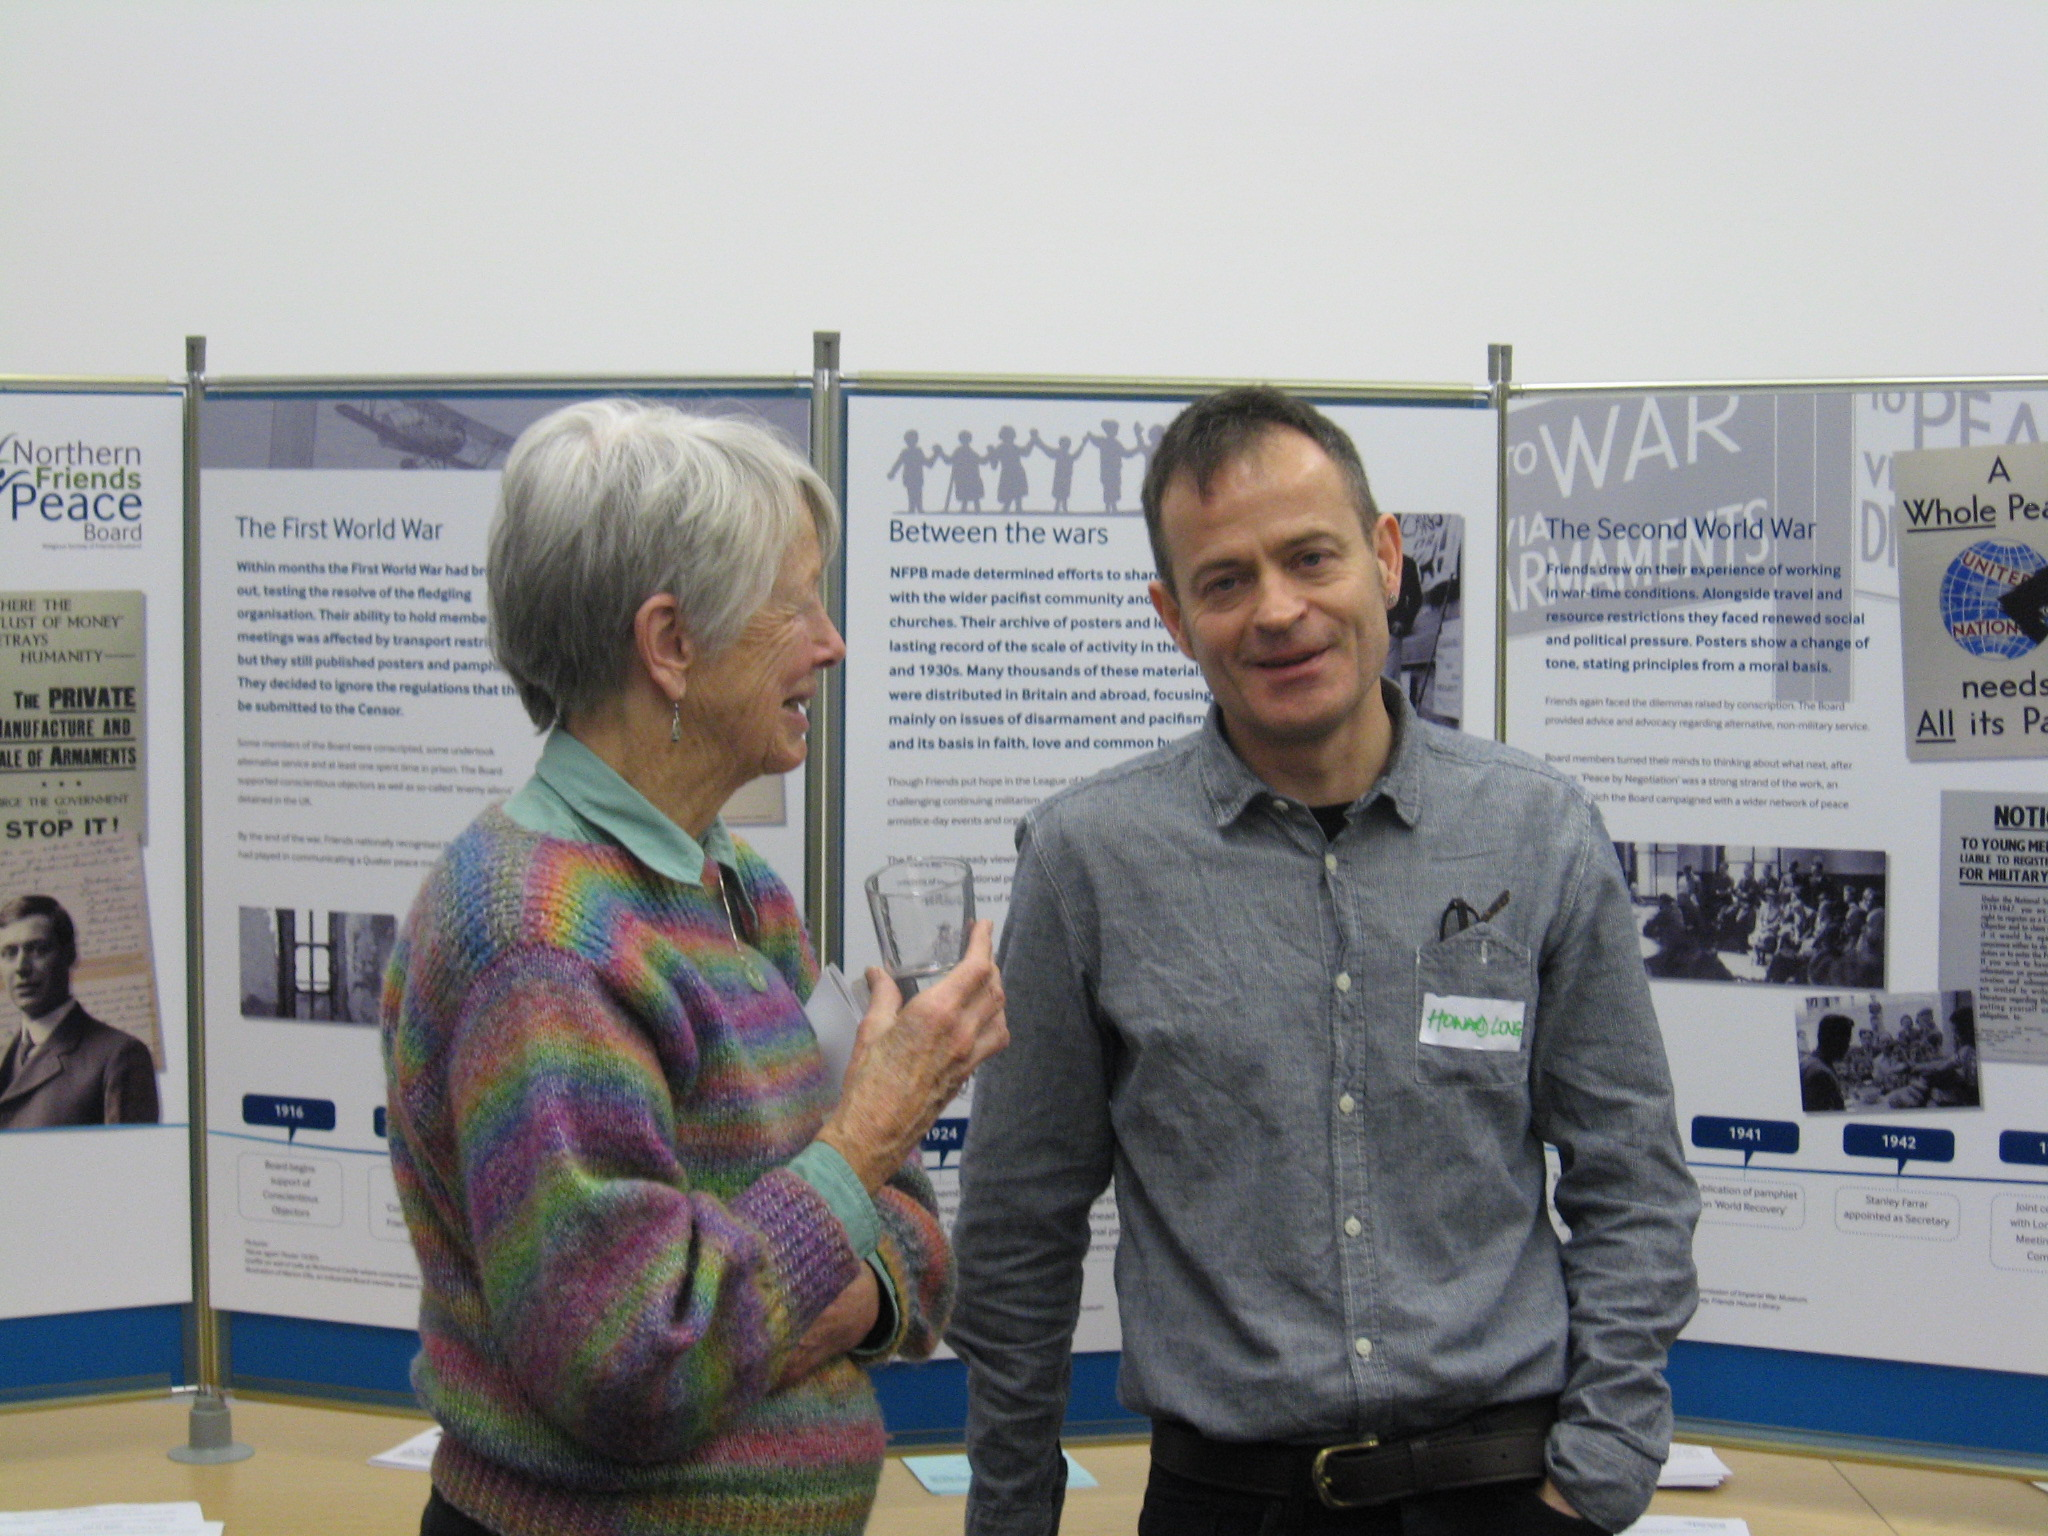 Two people chatting in front of display boards to celebrate 100 years of NFPB.